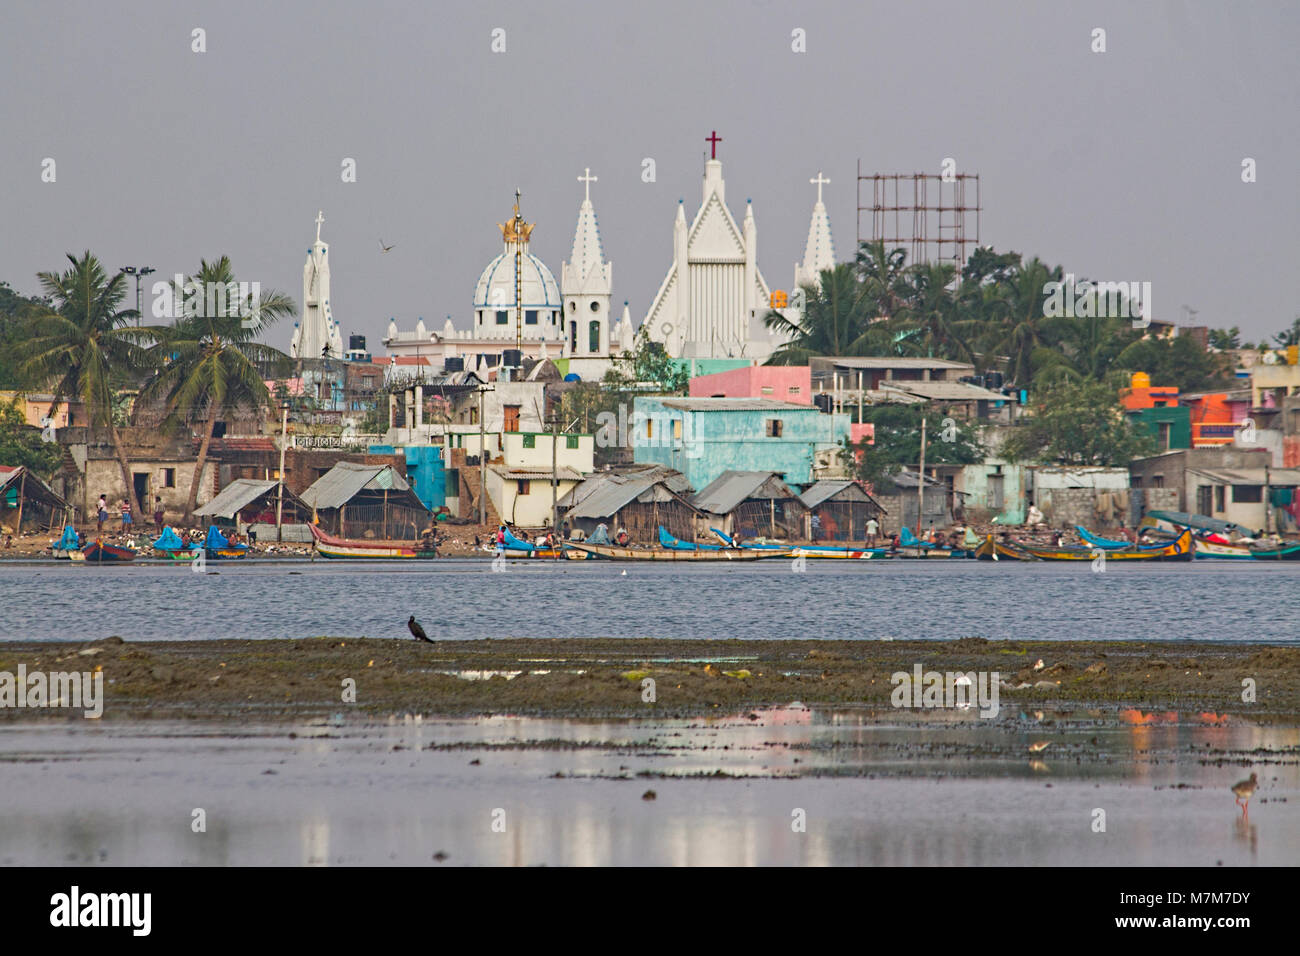 Ancient Church Build By Dutch Rulers At Pulicat Lakeside, Tamil Nadu, South India With Blue Sky Background - Stock Image